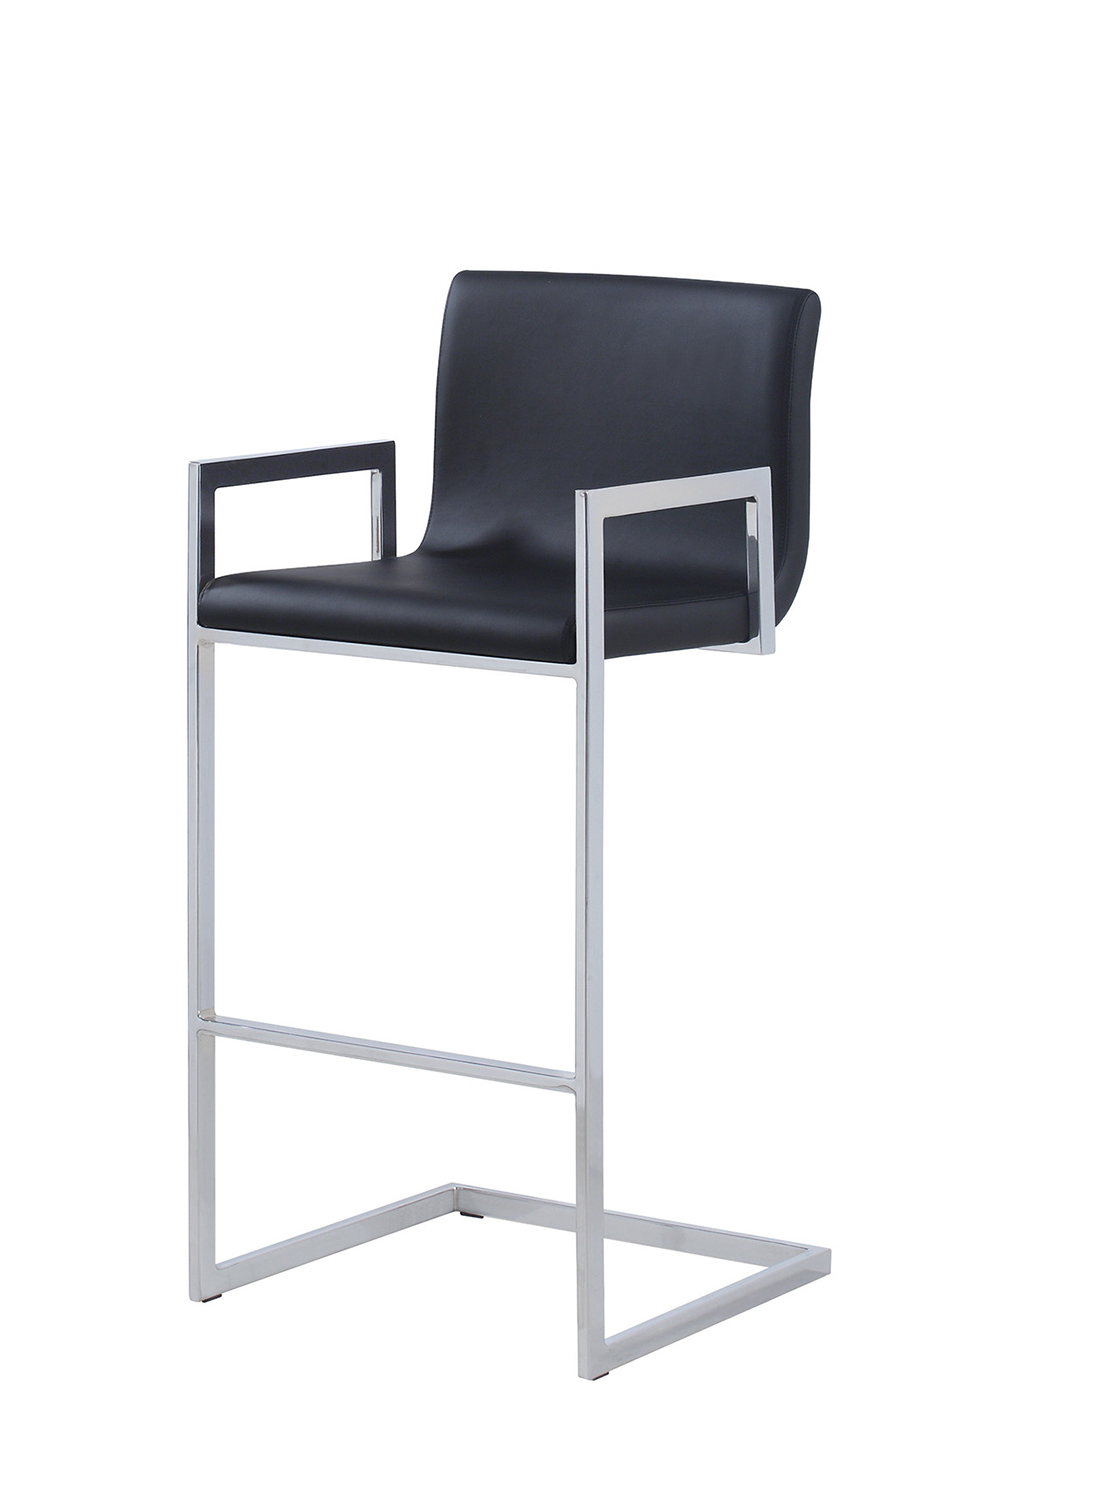 Coaster 104916 Bar Stool - Black/Chrome